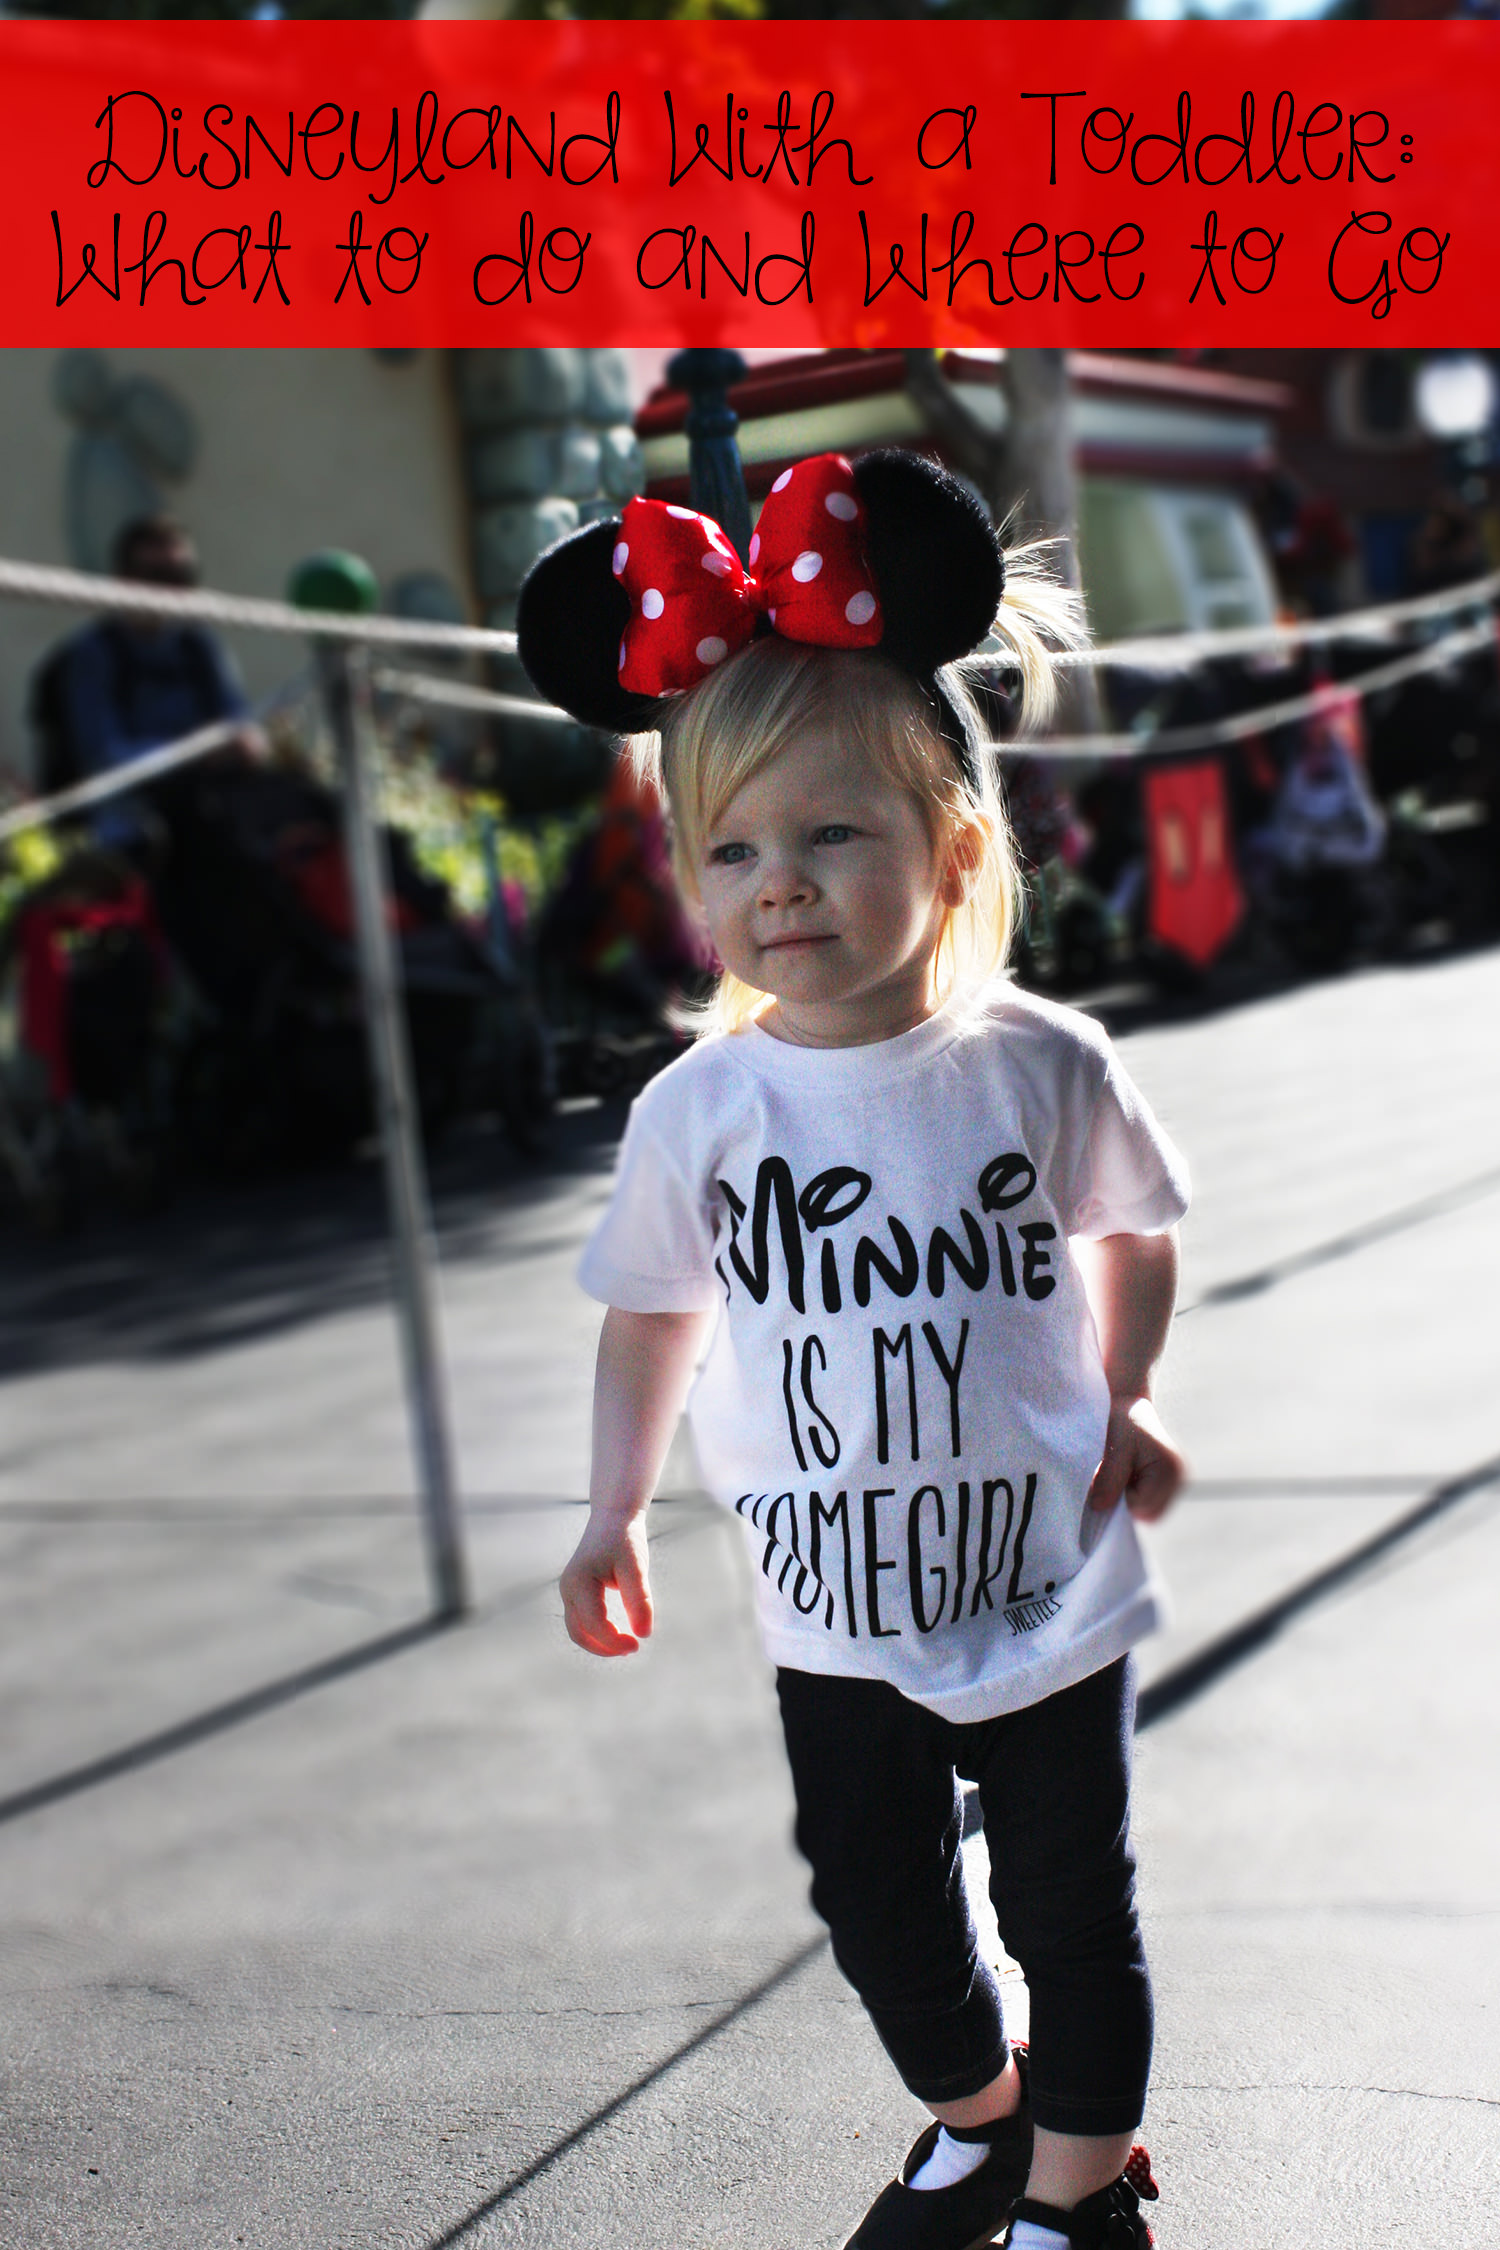 Visiting Disneyland with a Toddler? These tips will make your visit magical, fun and easy as pie!